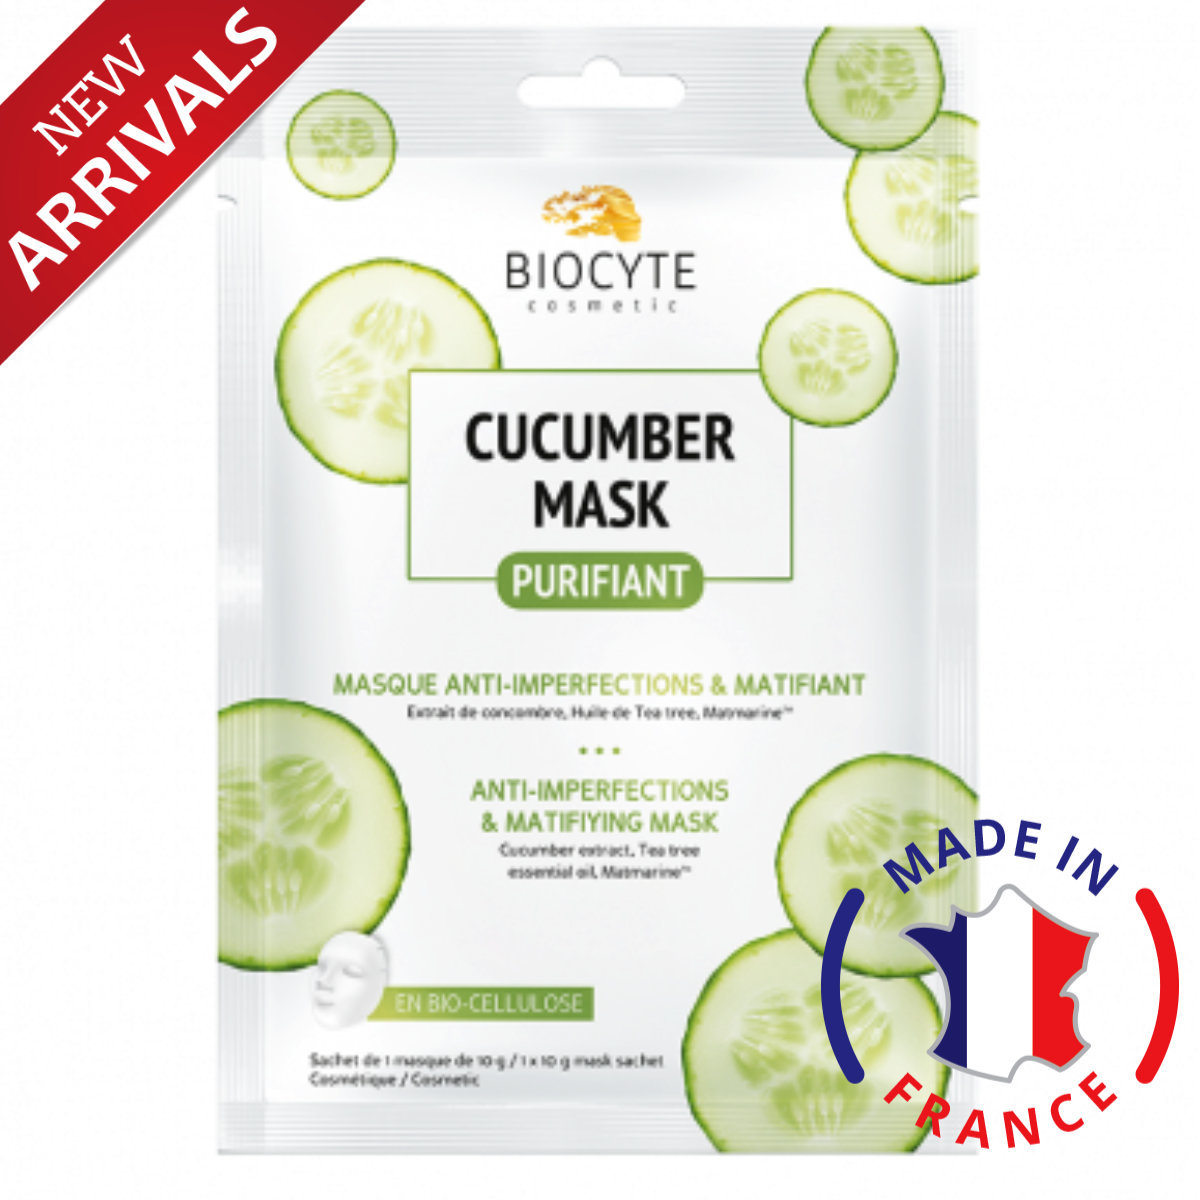 Cucumber Mask Purifying Anti-Imperfections and Matifying Mask 10g